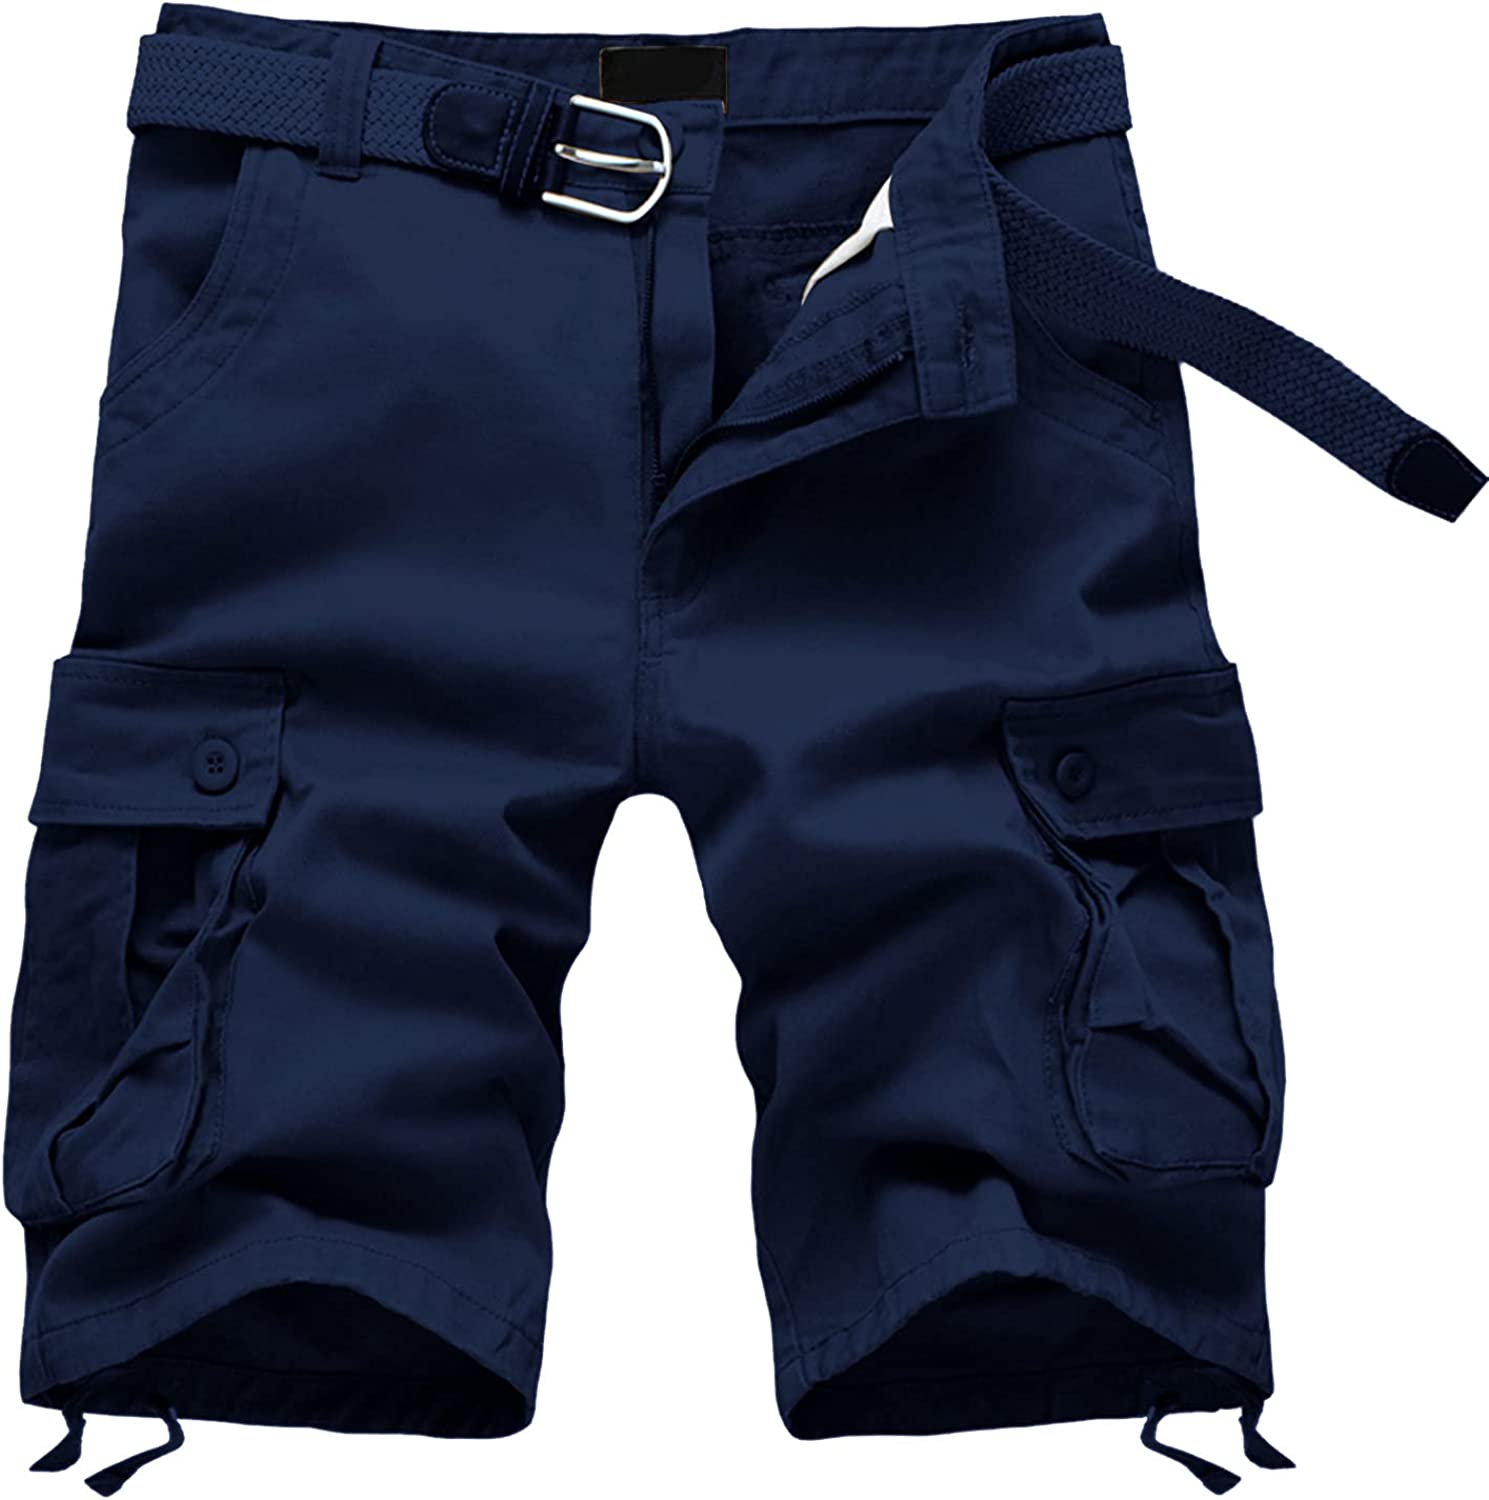 Men's Cargo Shorts Casual Classic Fit Drawstring Summer Beach Shorts with Elastic Waist and Pockets Outdoor Work Shorts